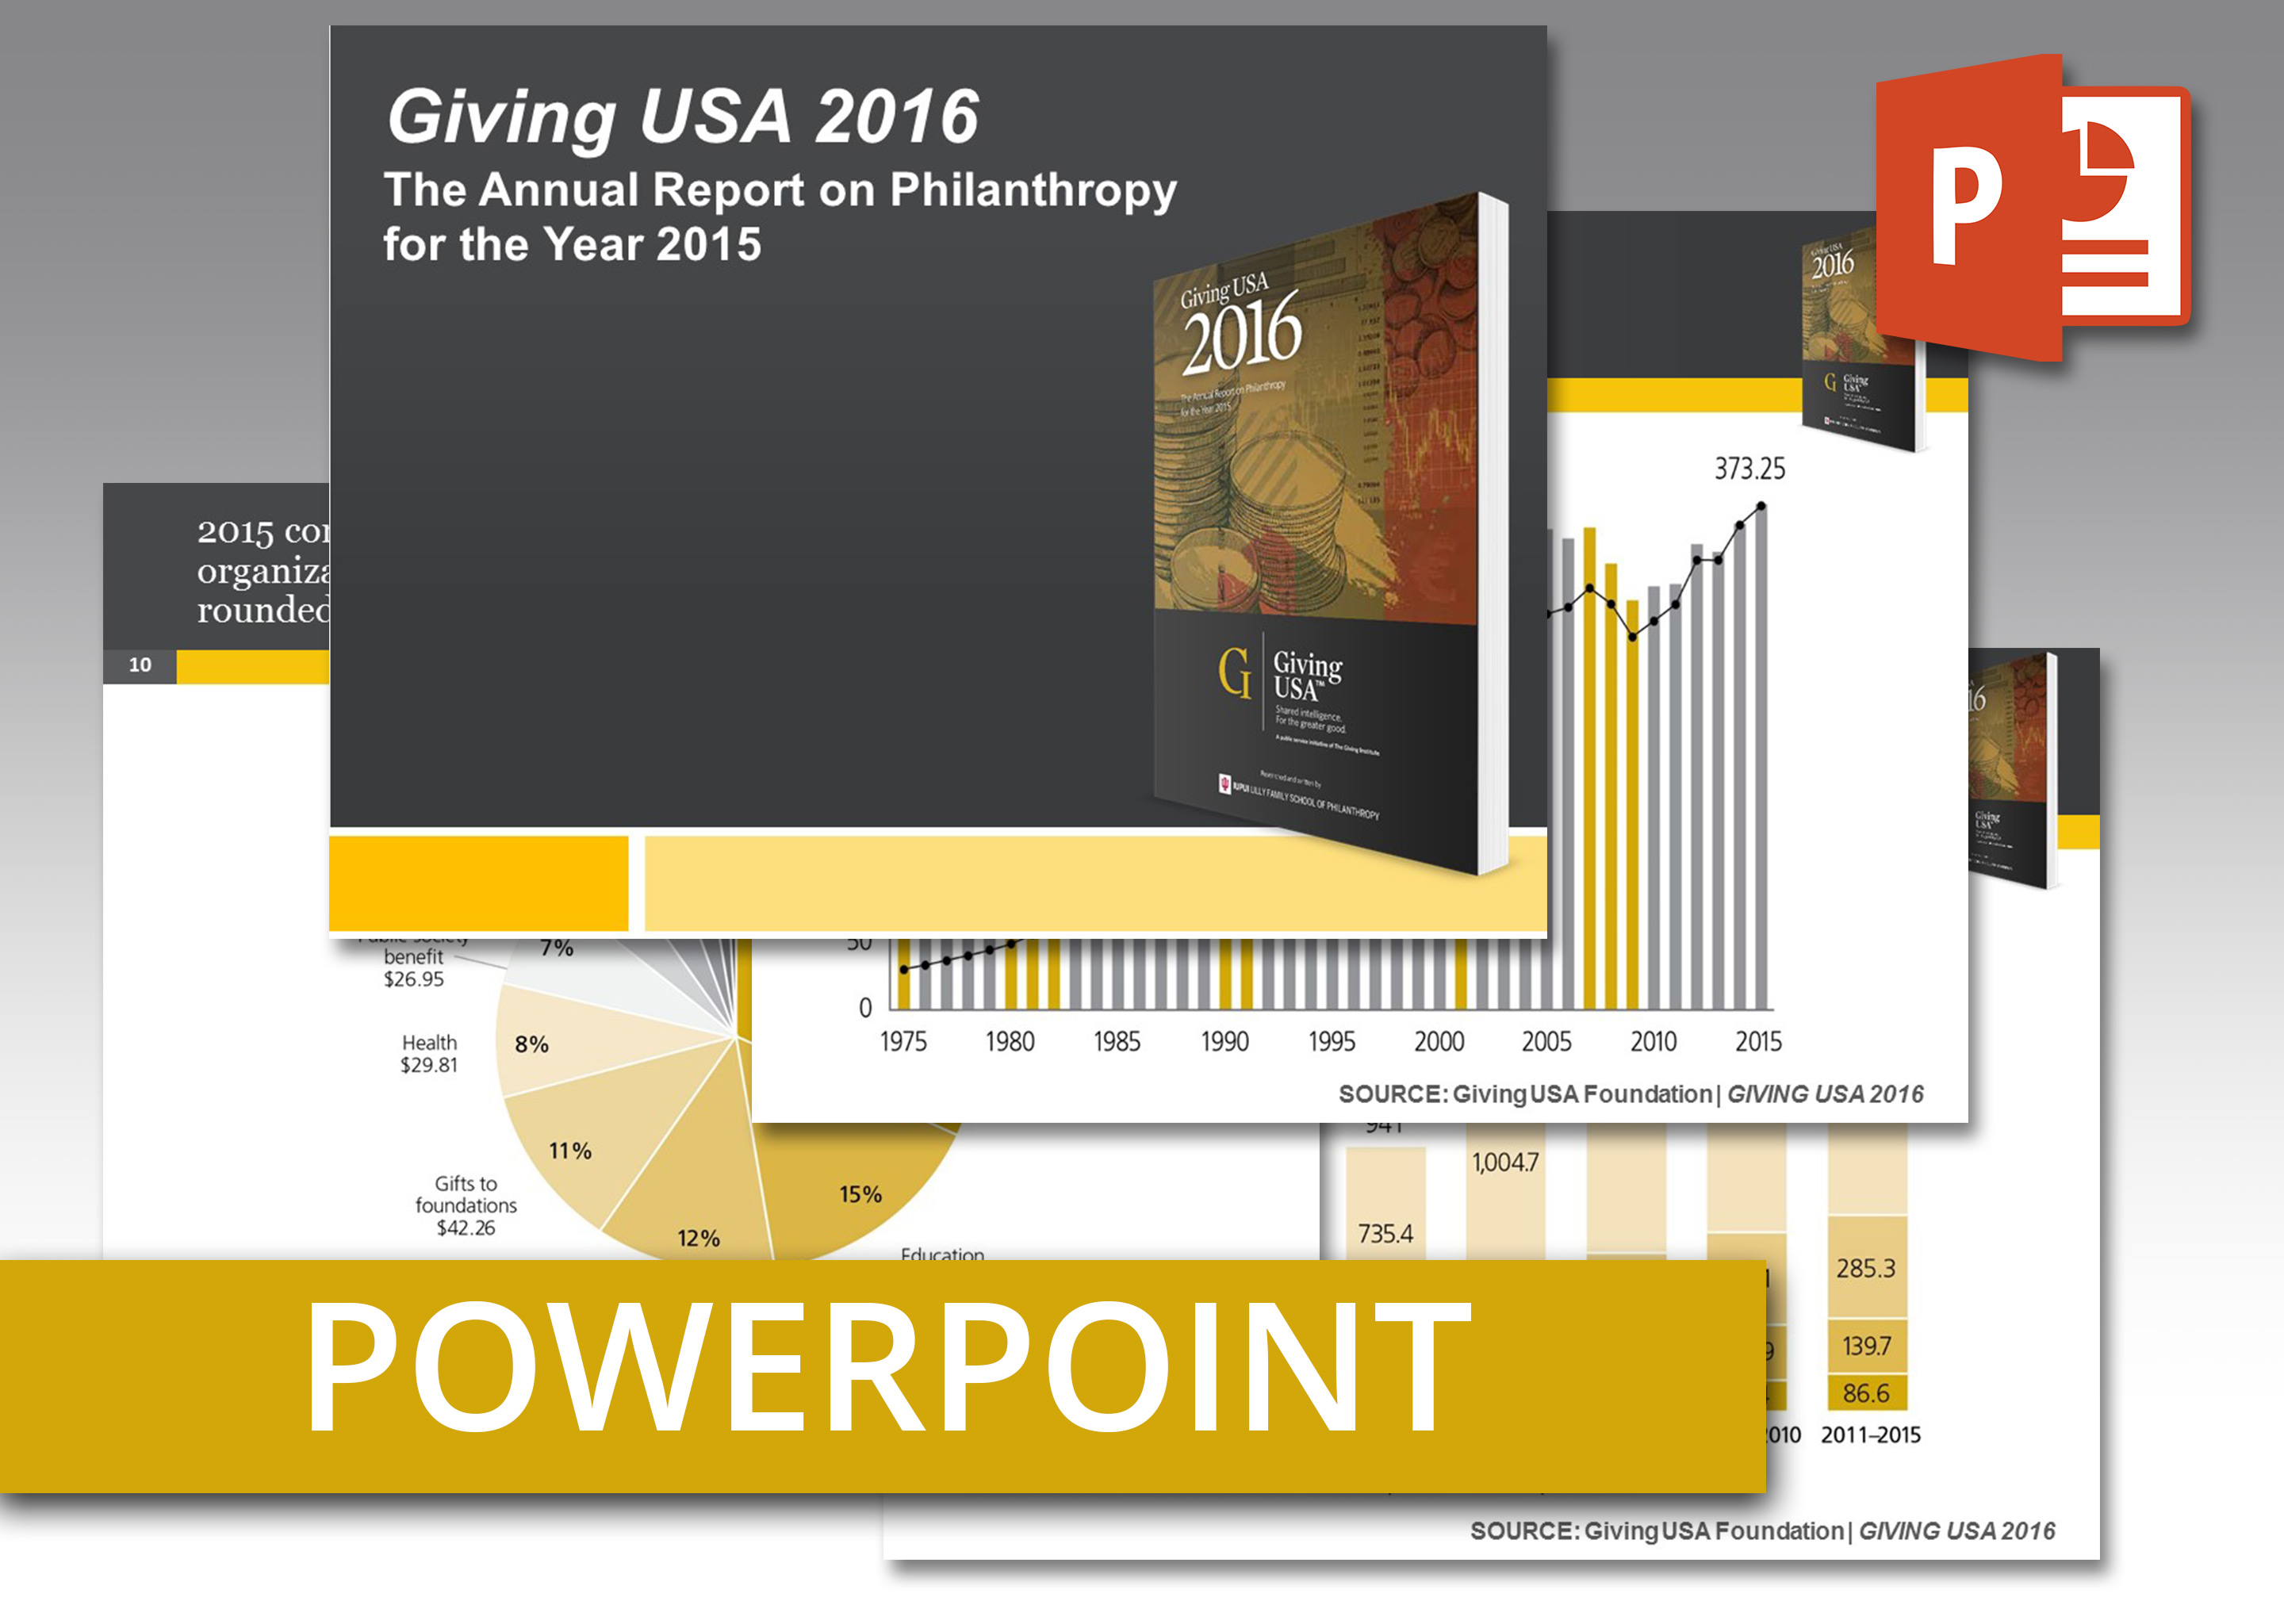 Coolmathgamesus  Remarkable Giving Usa  Powerpoint An Easytouse Presentation Of Report  With Remarkable Giving Usa  Powerpoint An Easytouse Presentation Of Report Findings Including Talking Points With Lovely Show Powerpoint On Ipad Also Discipline With Dignity Powerpoint In Addition Examples Of Good Powerpoint Slides And Embed A Youtube Video In Powerpoint  As Well As Confucius Powerpoint Additionally Real Number System Powerpoint From Givingusaorg With Coolmathgamesus  Remarkable Giving Usa  Powerpoint An Easytouse Presentation Of Report  With Lovely Giving Usa  Powerpoint An Easytouse Presentation Of Report Findings Including Talking Points And Remarkable Show Powerpoint On Ipad Also Discipline With Dignity Powerpoint In Addition Examples Of Good Powerpoint Slides From Givingusaorg